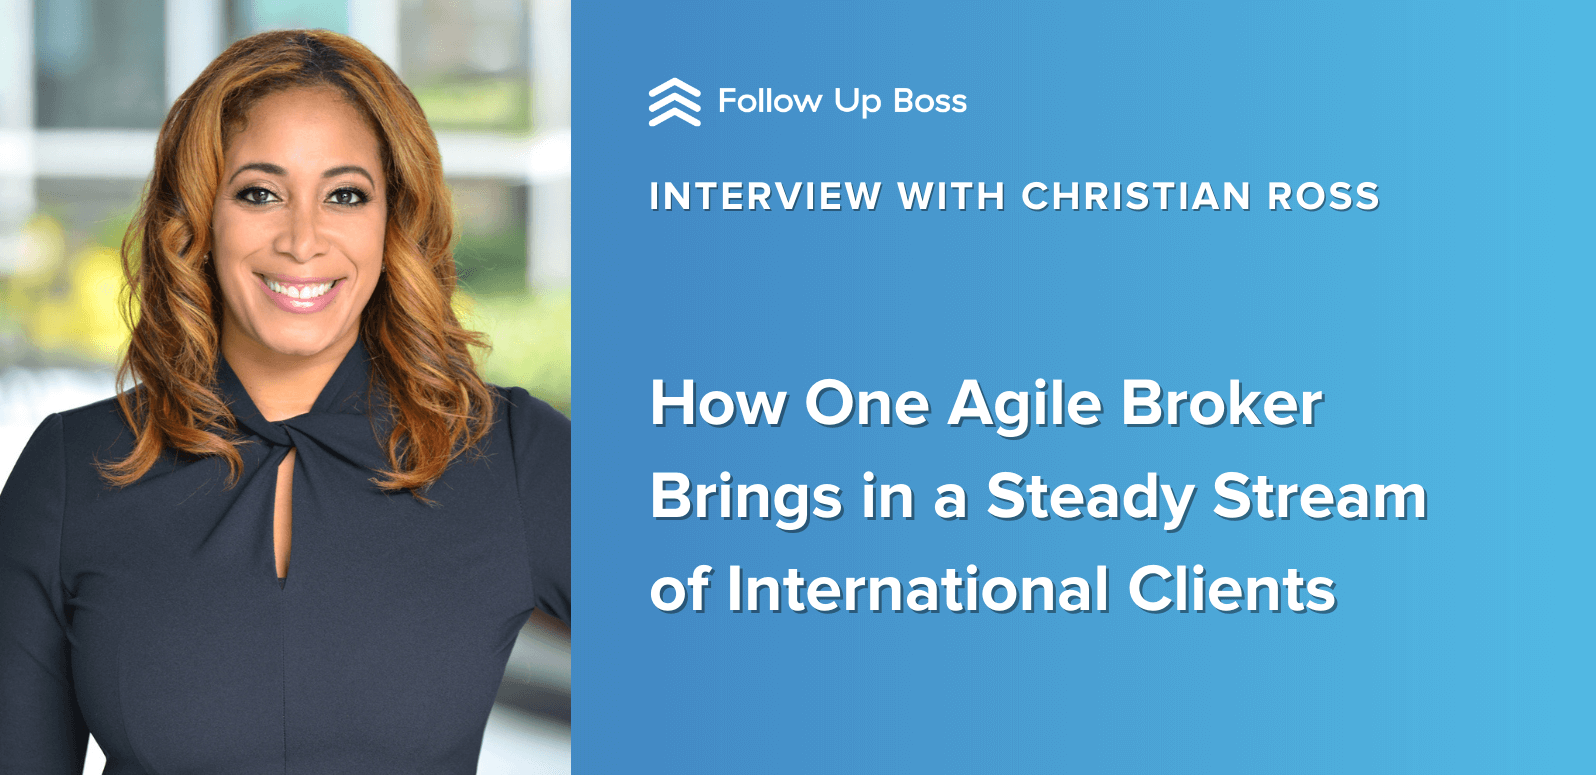 Team Culture Gone Global: How One Agile Broker Brings in a Steady Stream of International Clients